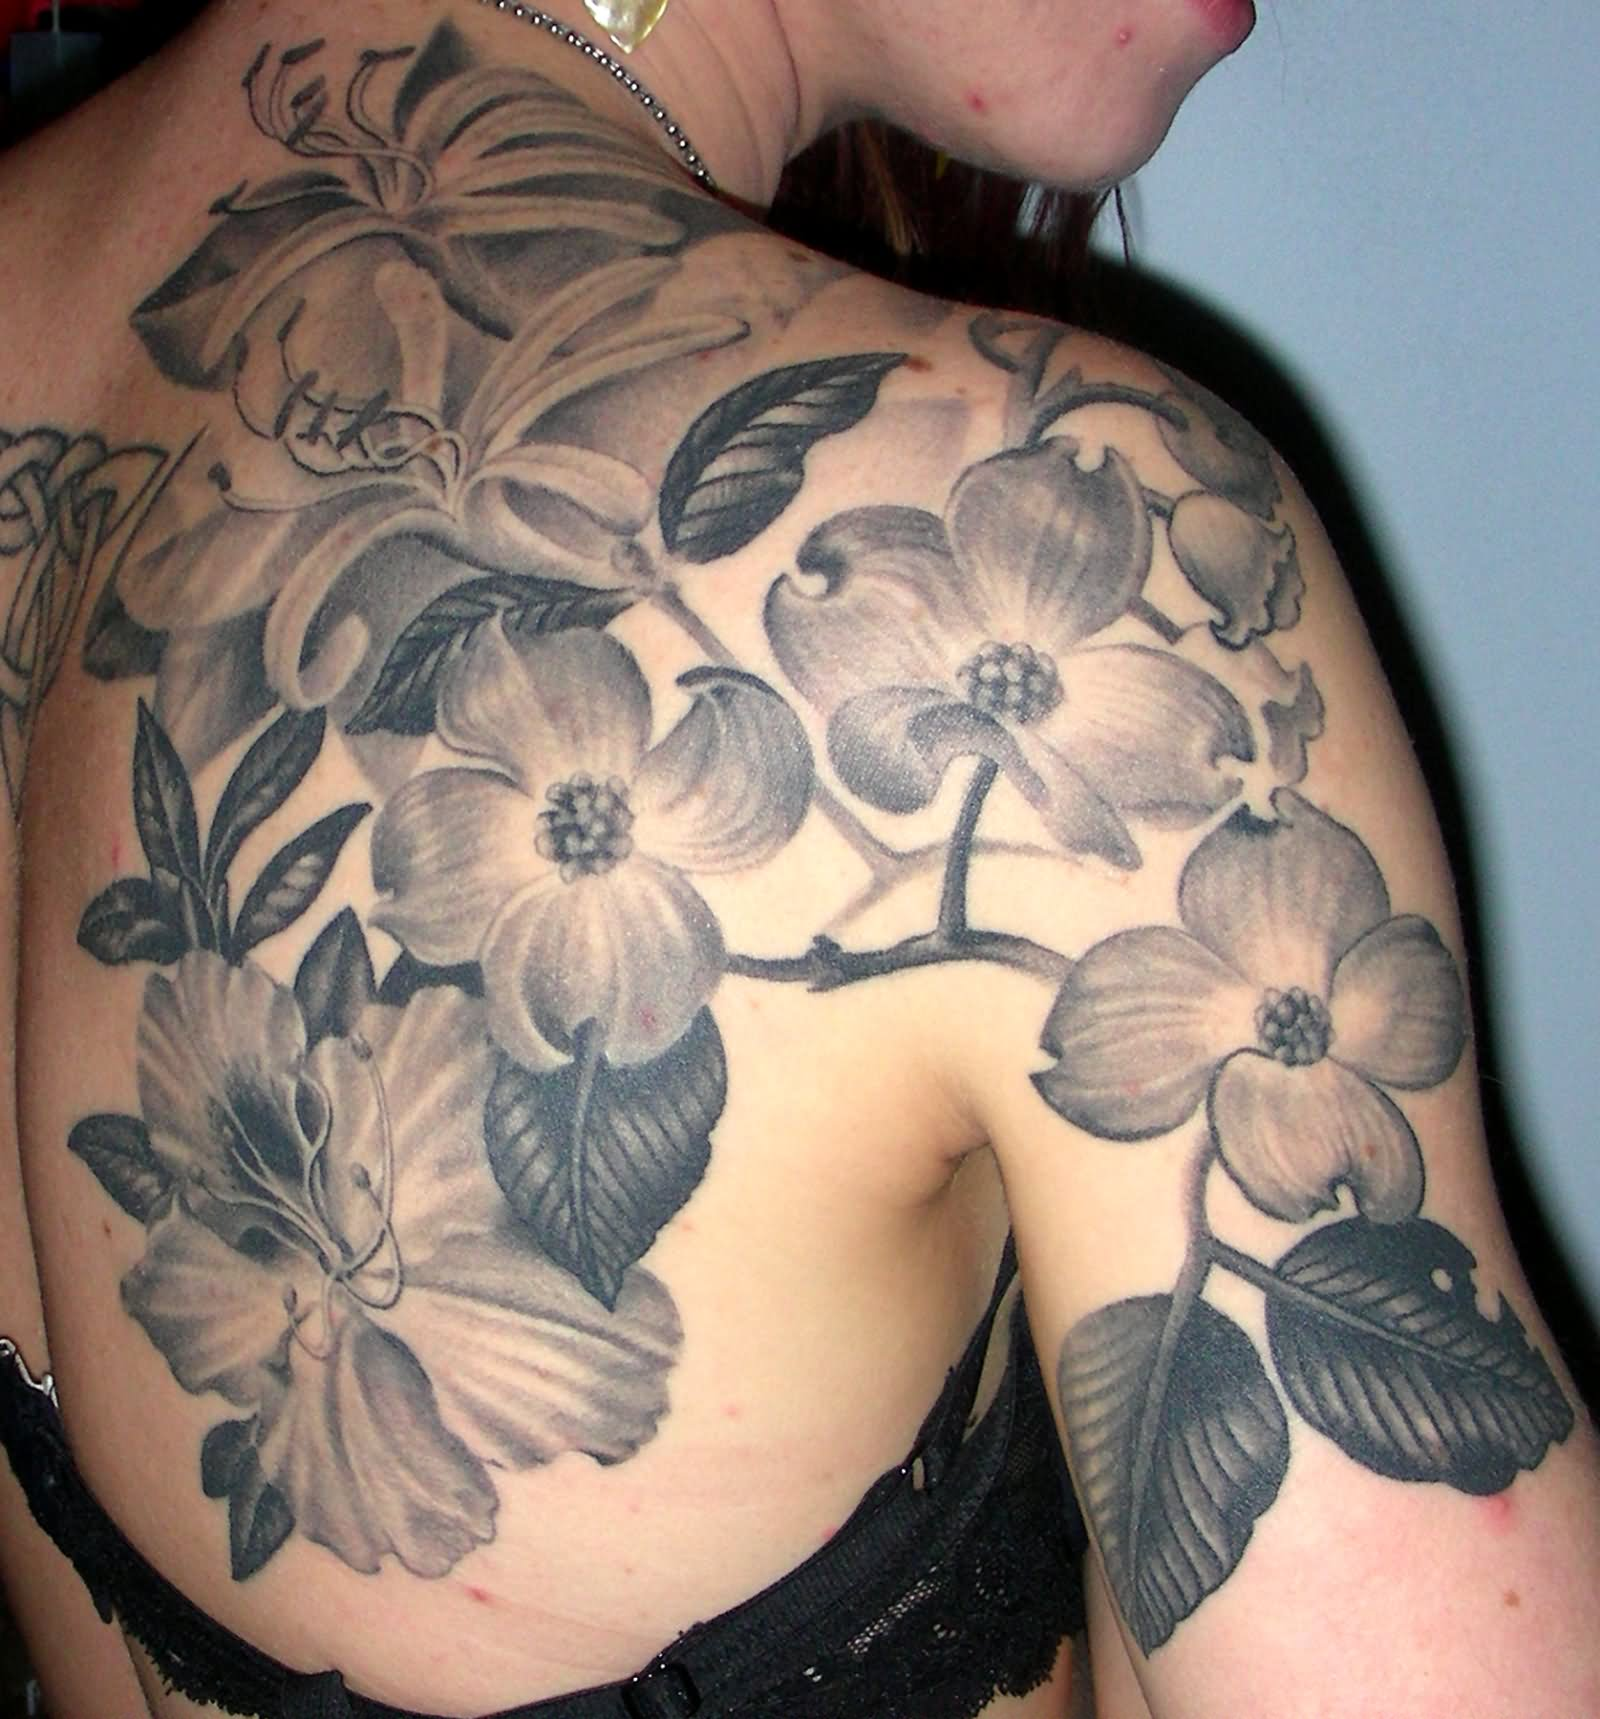 Flower Shoulder Tattoo Designs: 21+ Nice Floral Arm Tattoos